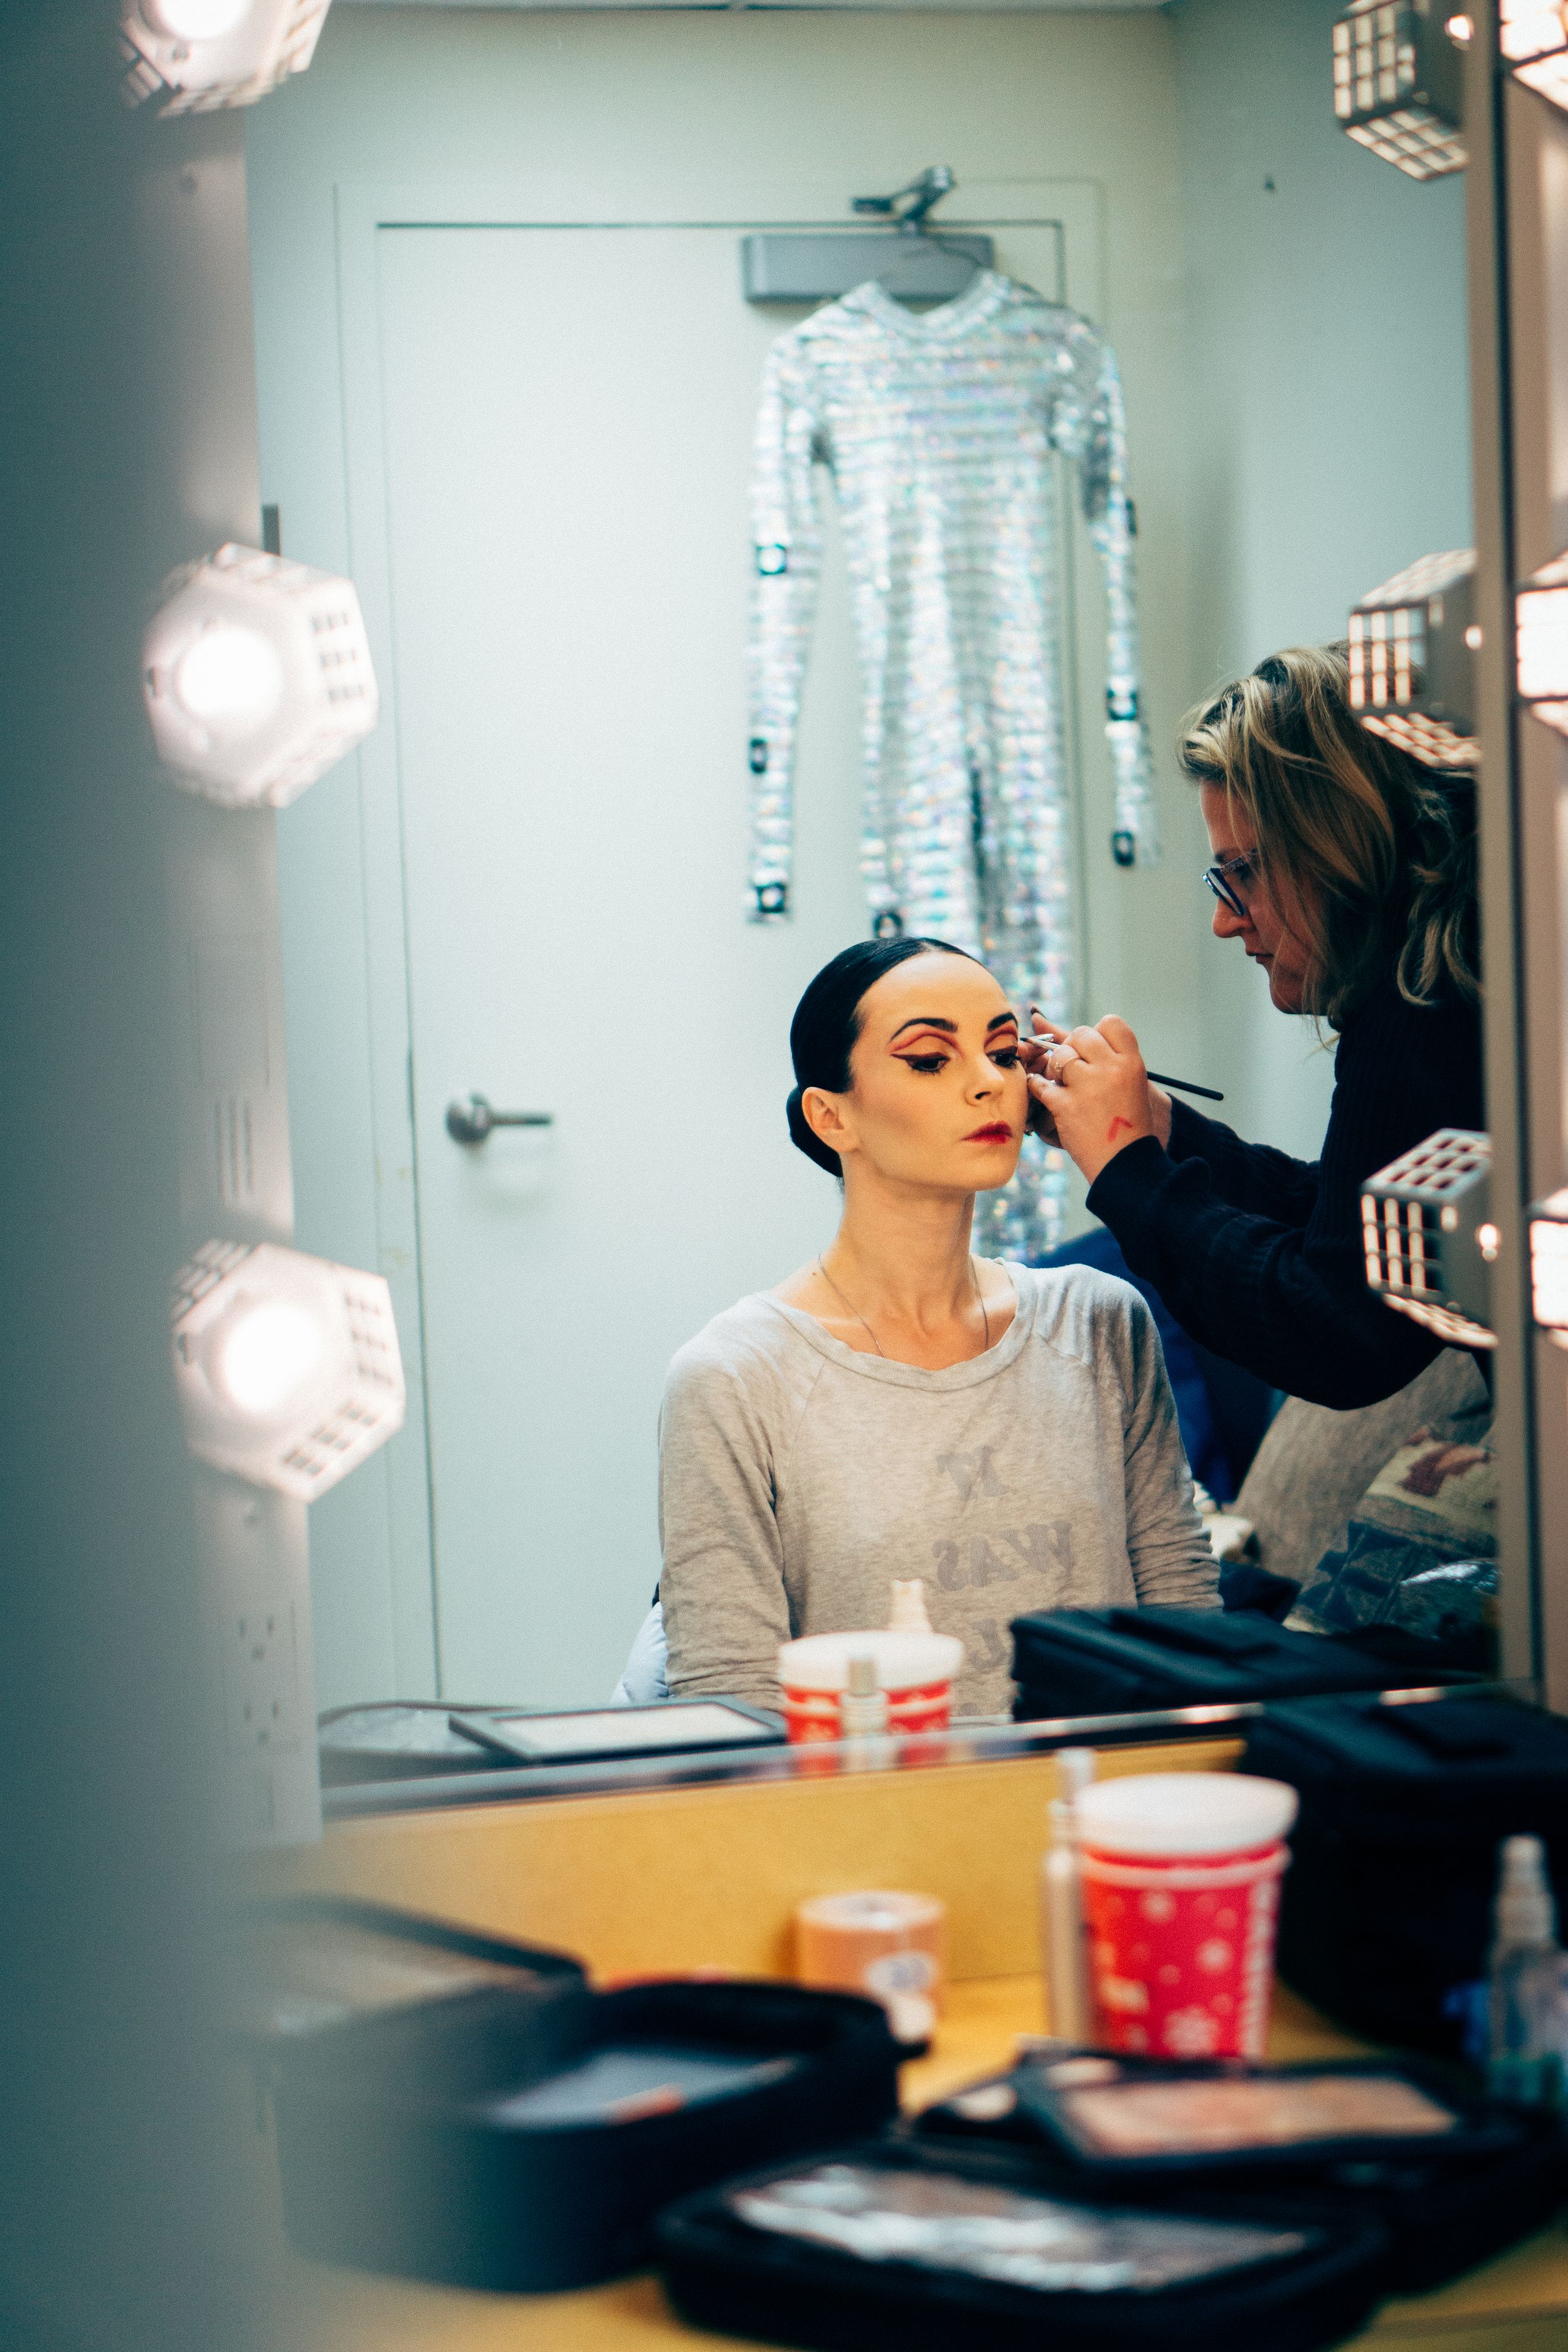 diana vishneva behind the scenes dance photography chicago